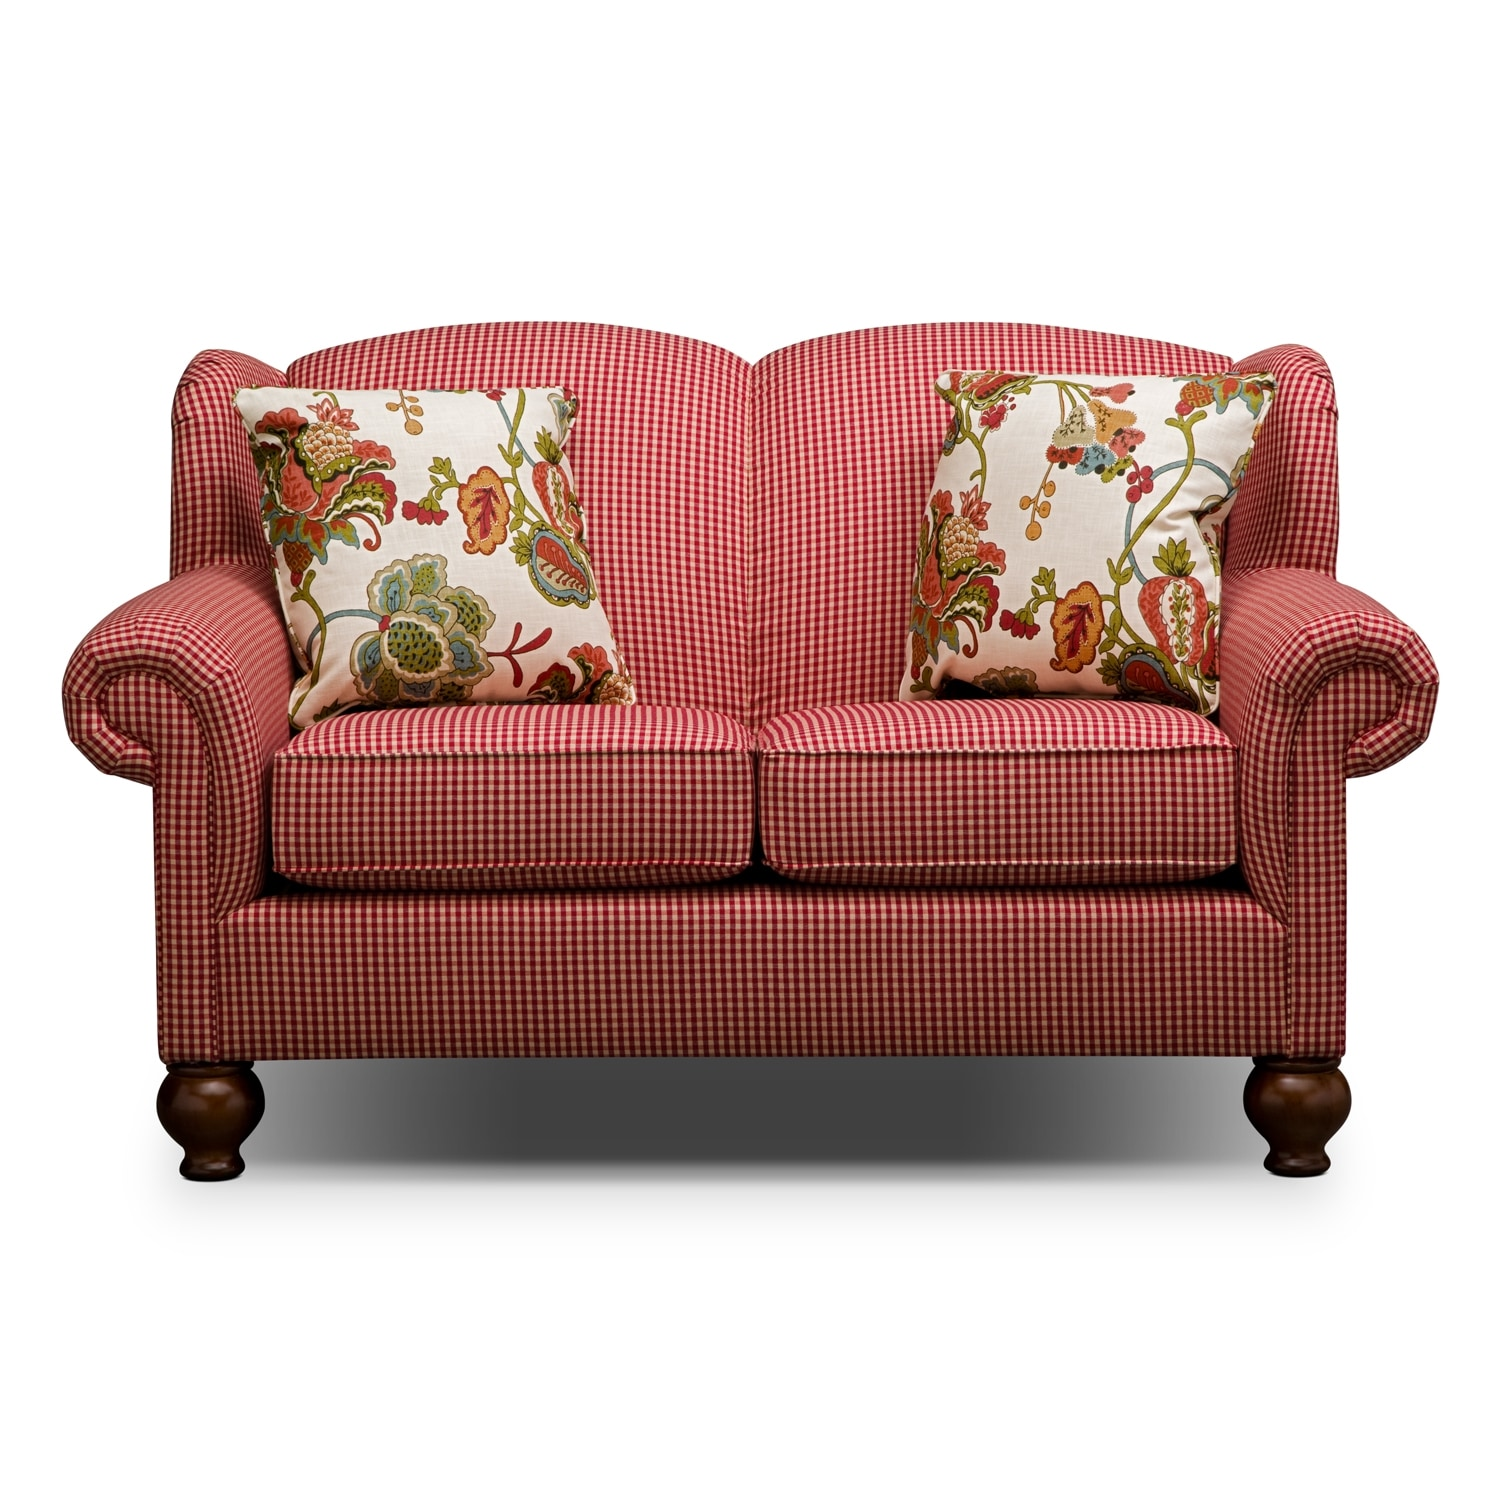 Gingham Sofa Country Cottage Sofas Foter TheSofa : 302323 from thesofa.droogkast.com size 1500 x 1500 jpeg 380kB